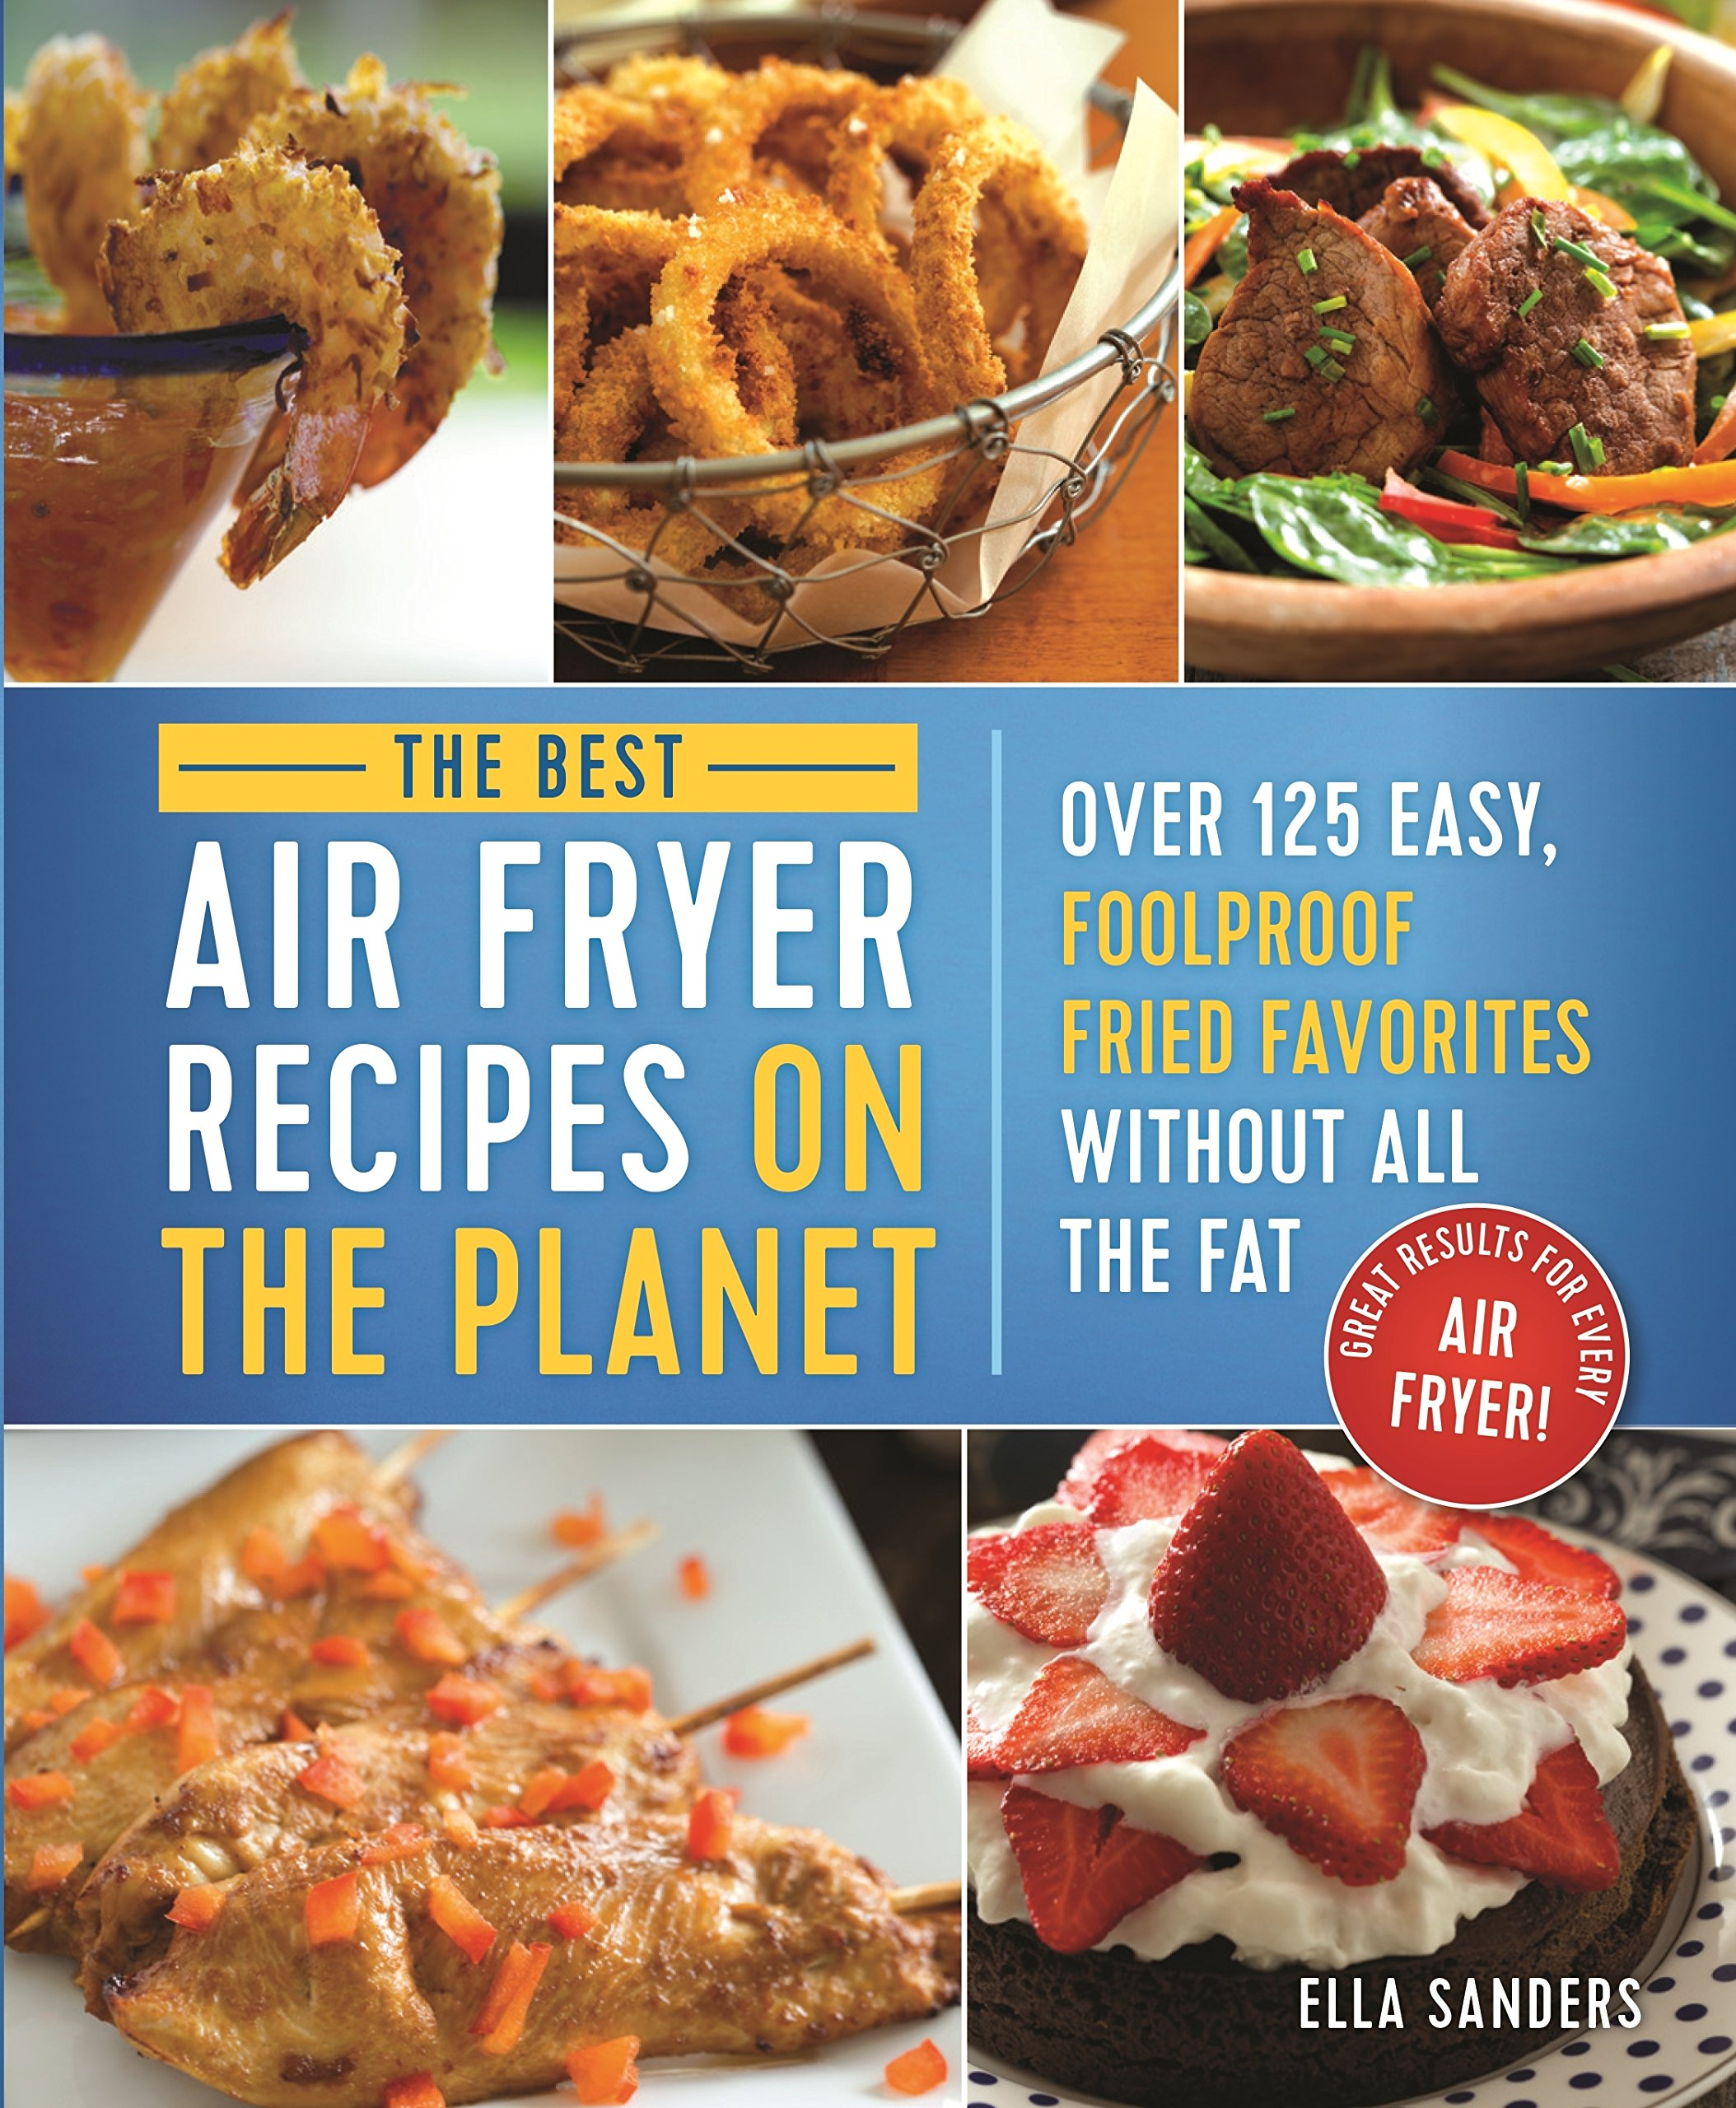 The Best Air Fryer Recipes on the Planet by Ella Sanders